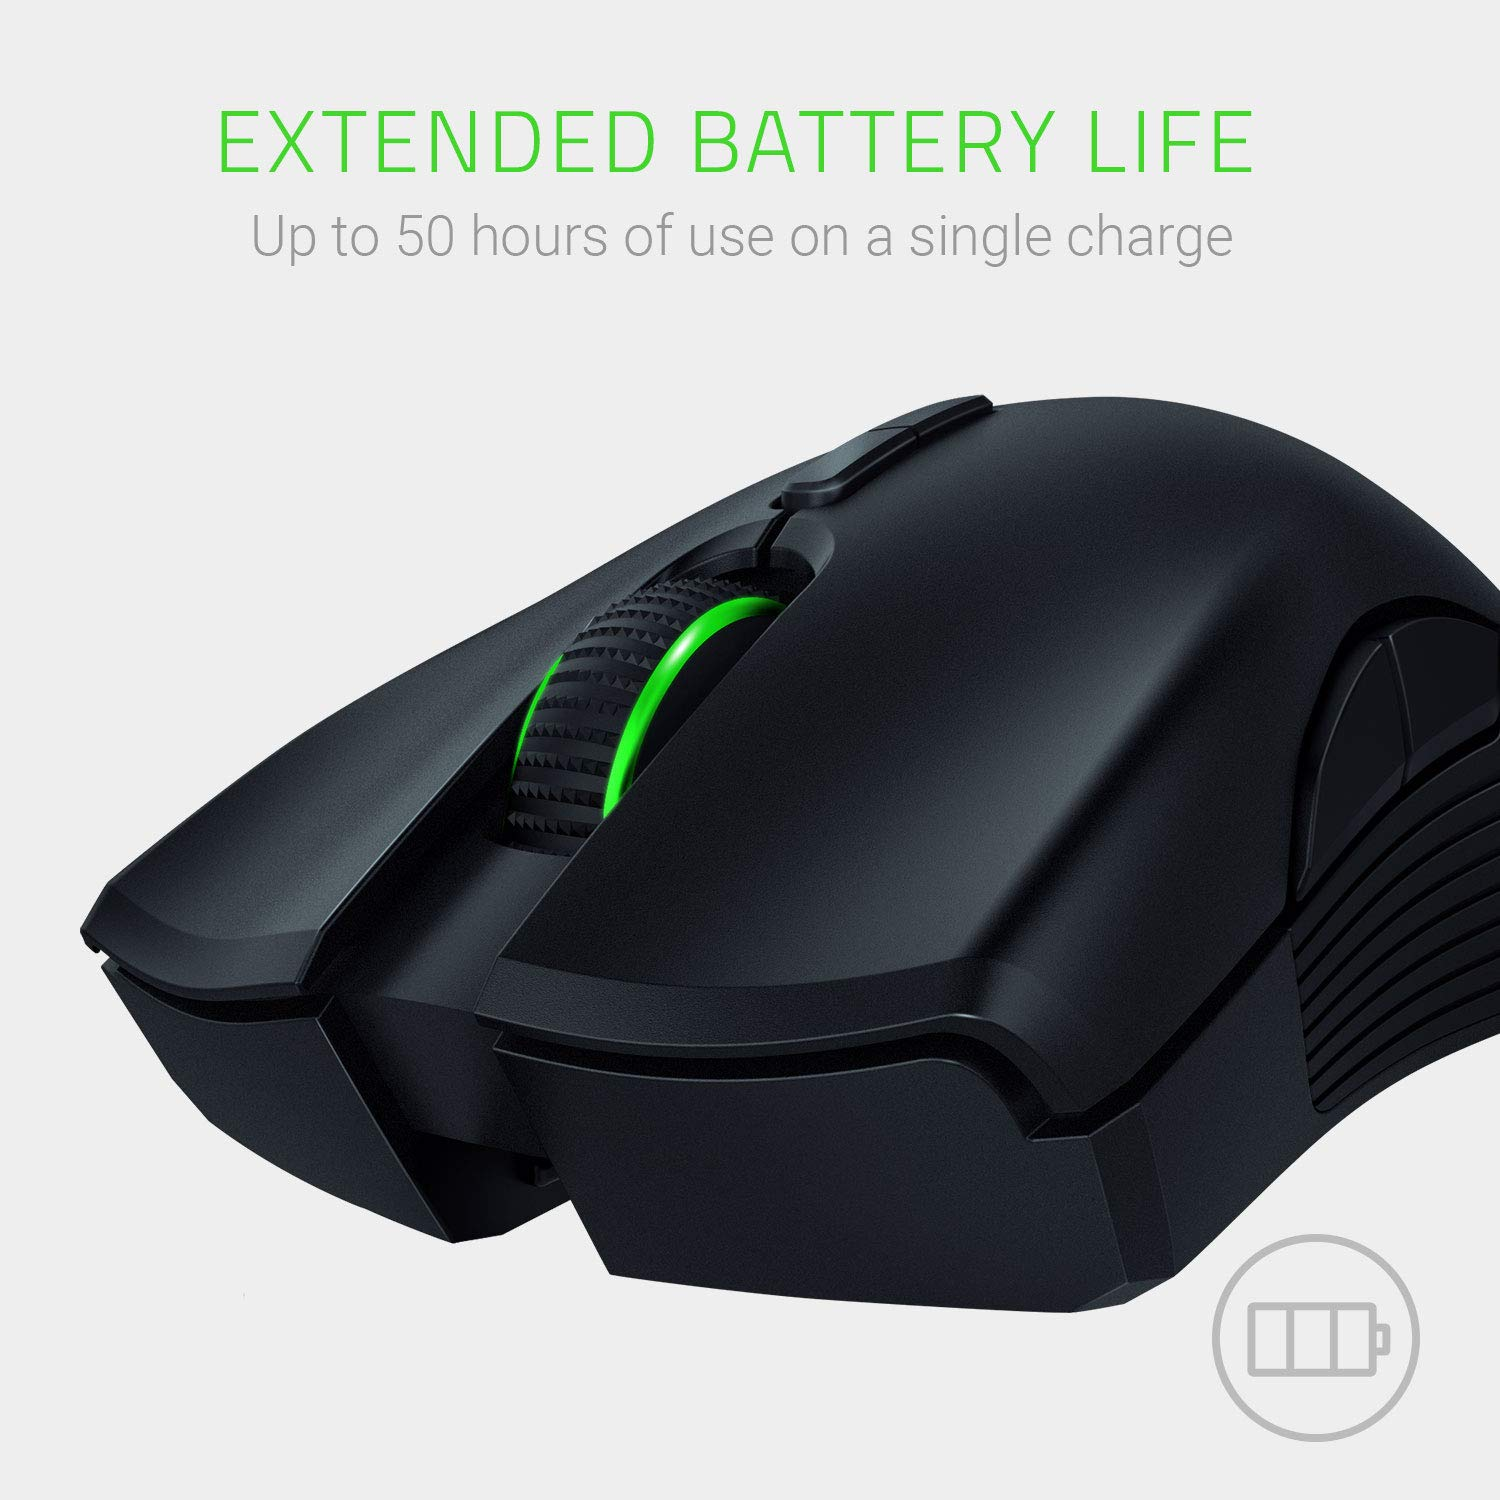 Razer Mamba Wireless Gaming Mouse: 16,000 DPI Optical Sensor - Chroma RGB Lighting - 7 Programmable Buttons - Mechanical Switches - Up to 50 Hr Battery Life by Razer (Image #2)